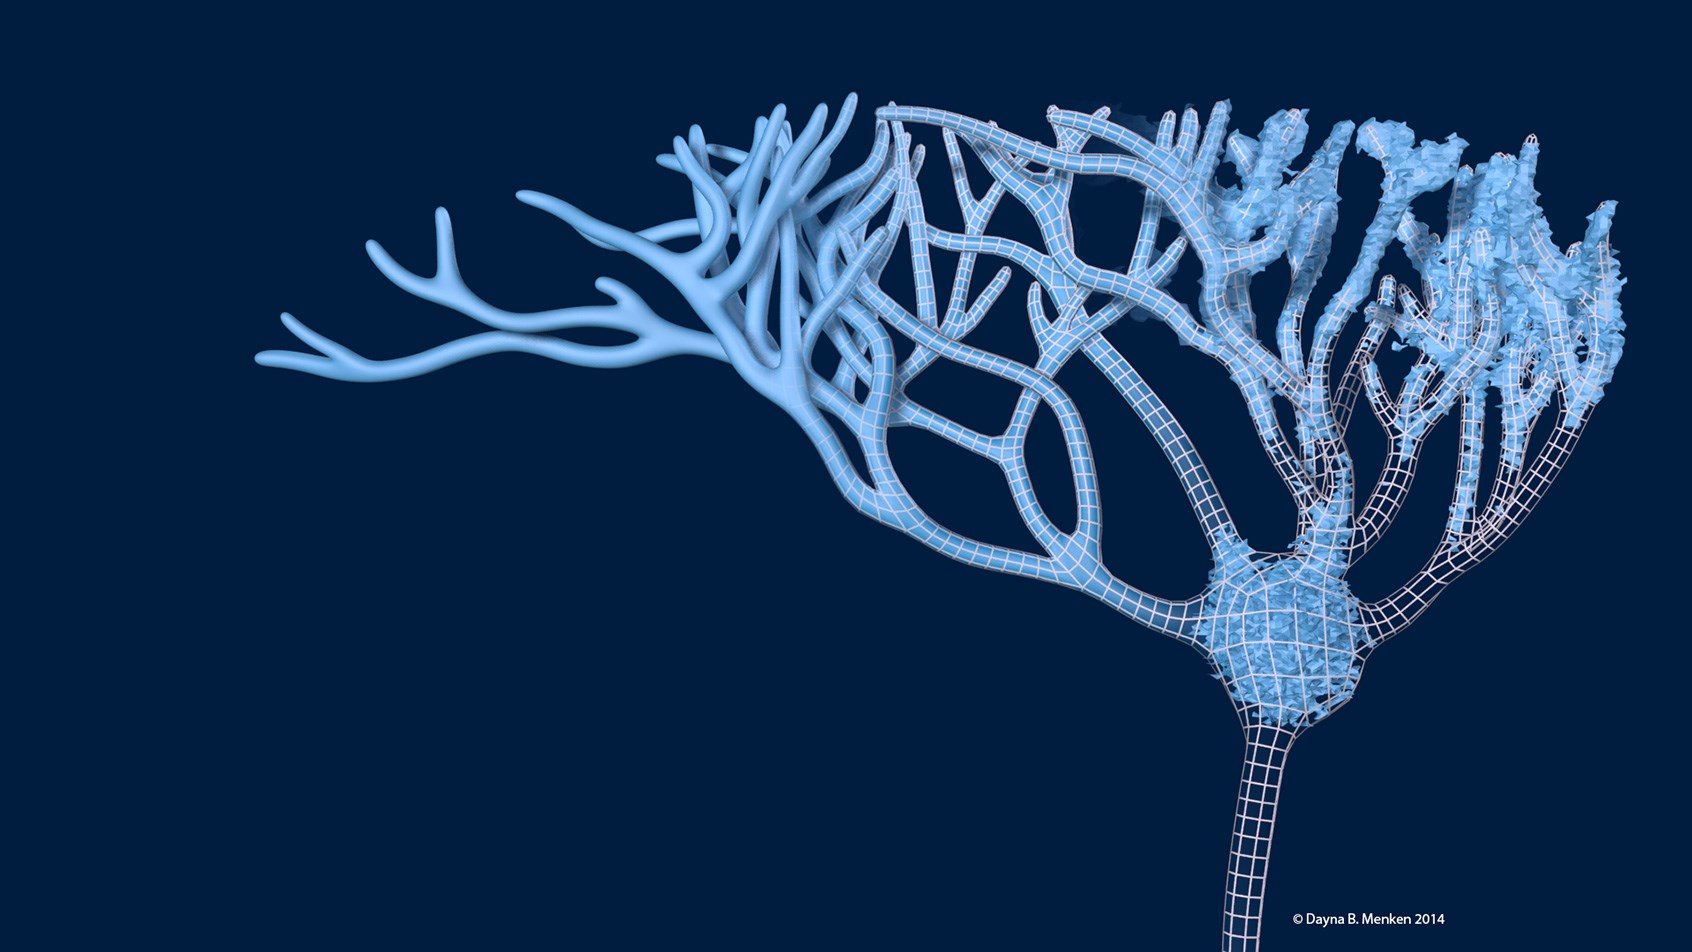 Designer BioMed 3D Neuron Model